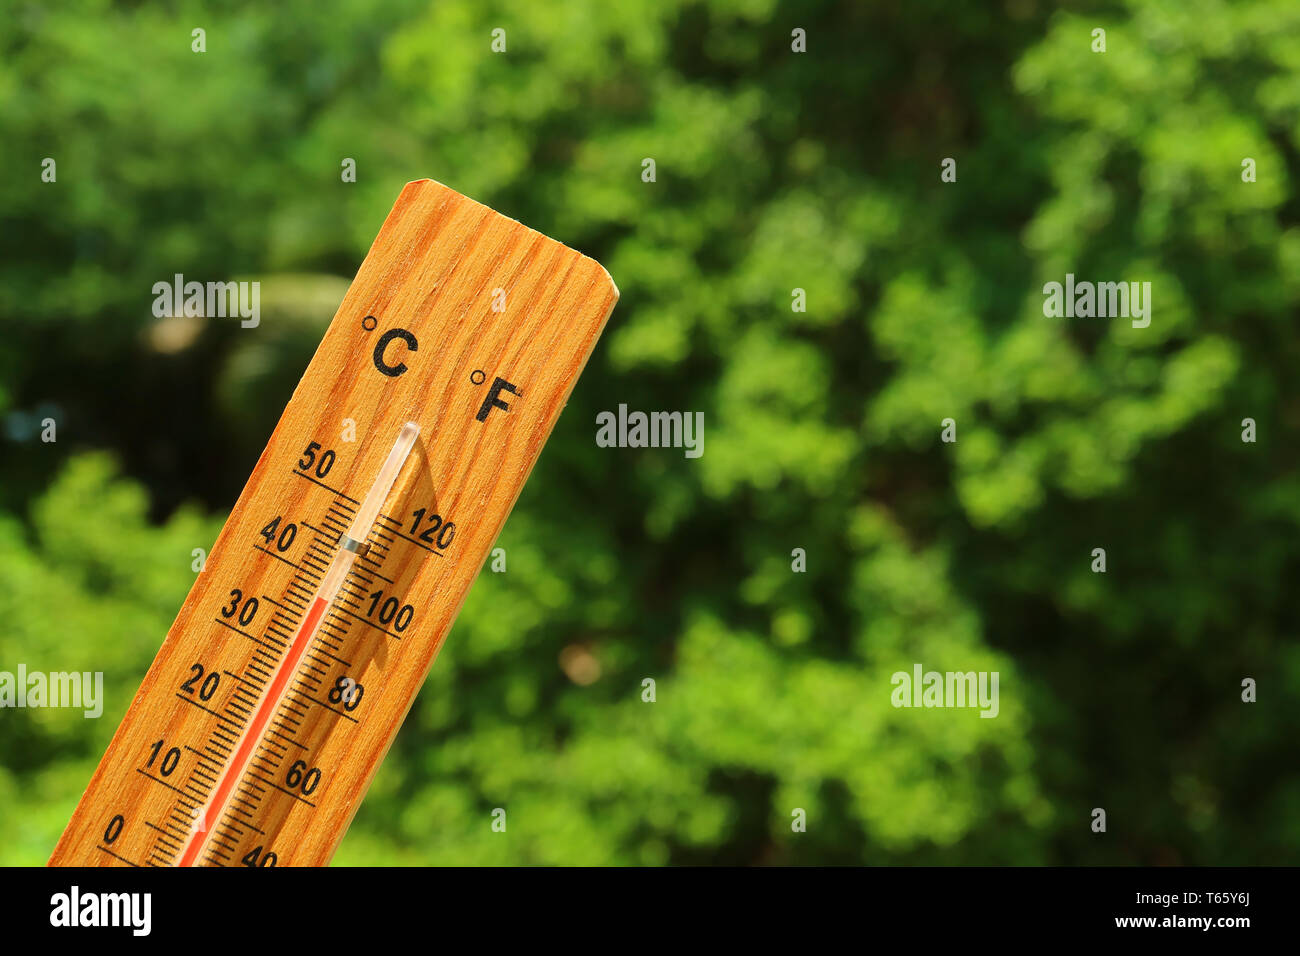 Wooden thermometer in the summer sunlight showing high temperature - Stock Image